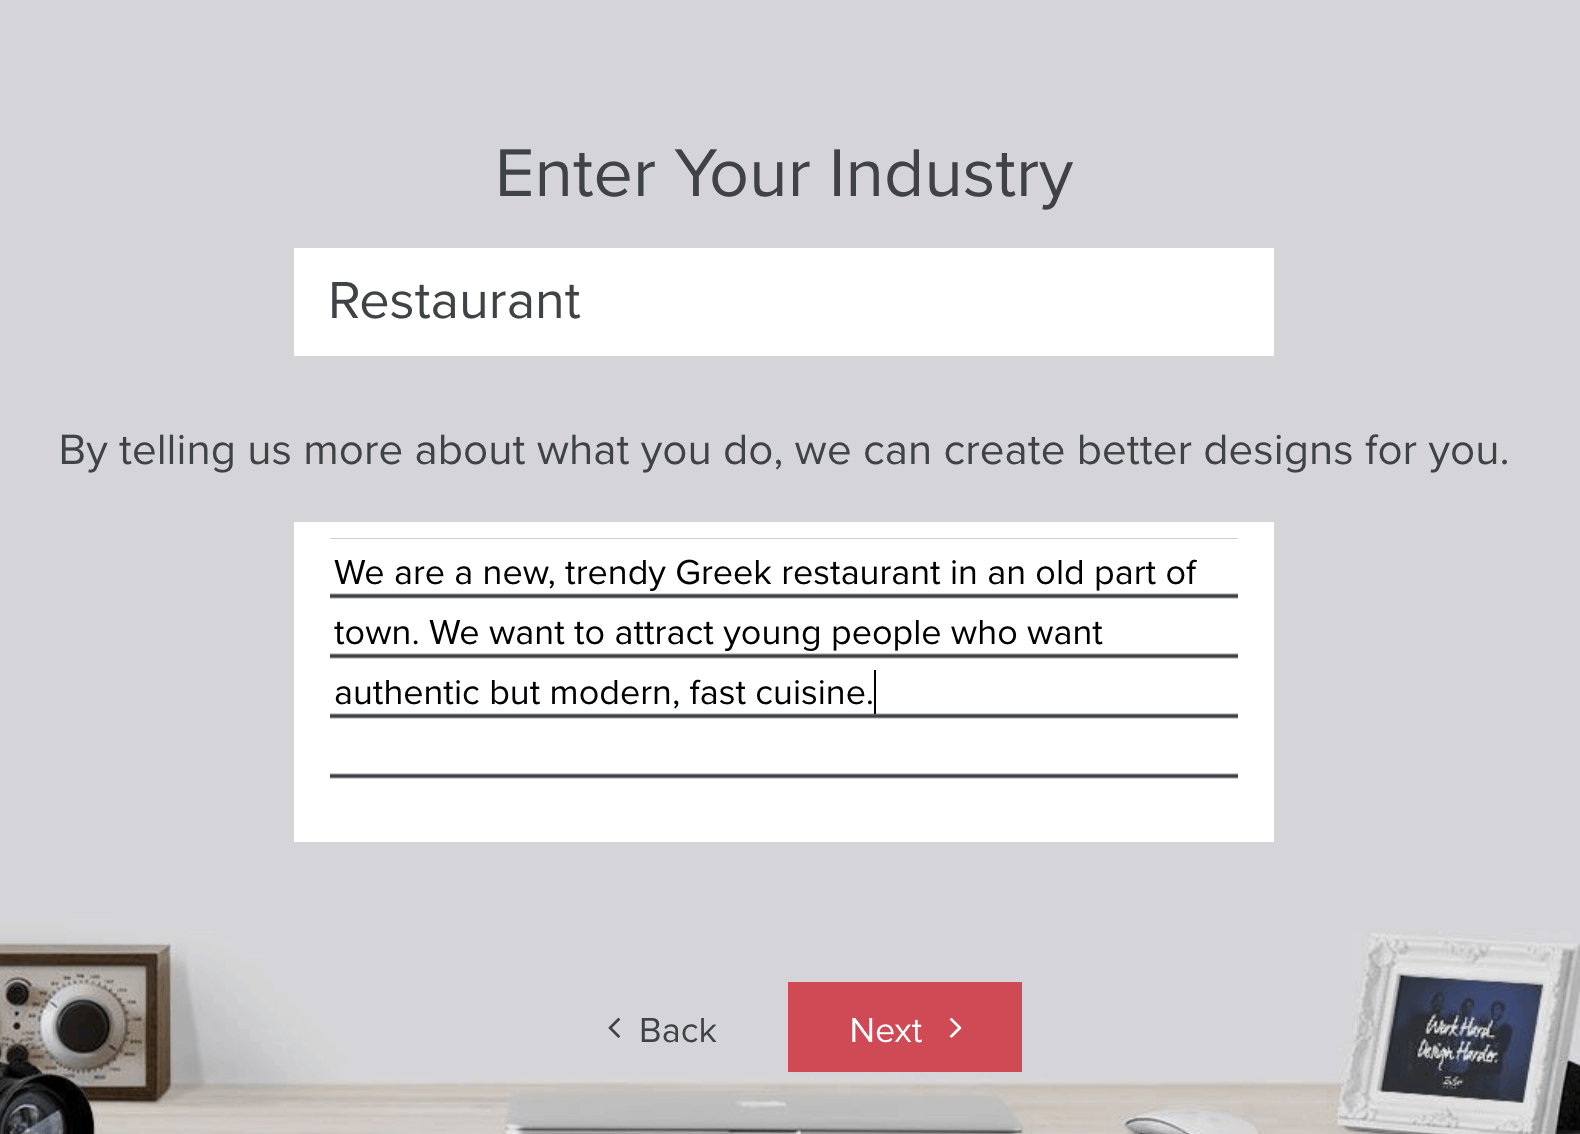 Tailor Brands screenshot - Enter Your Industry